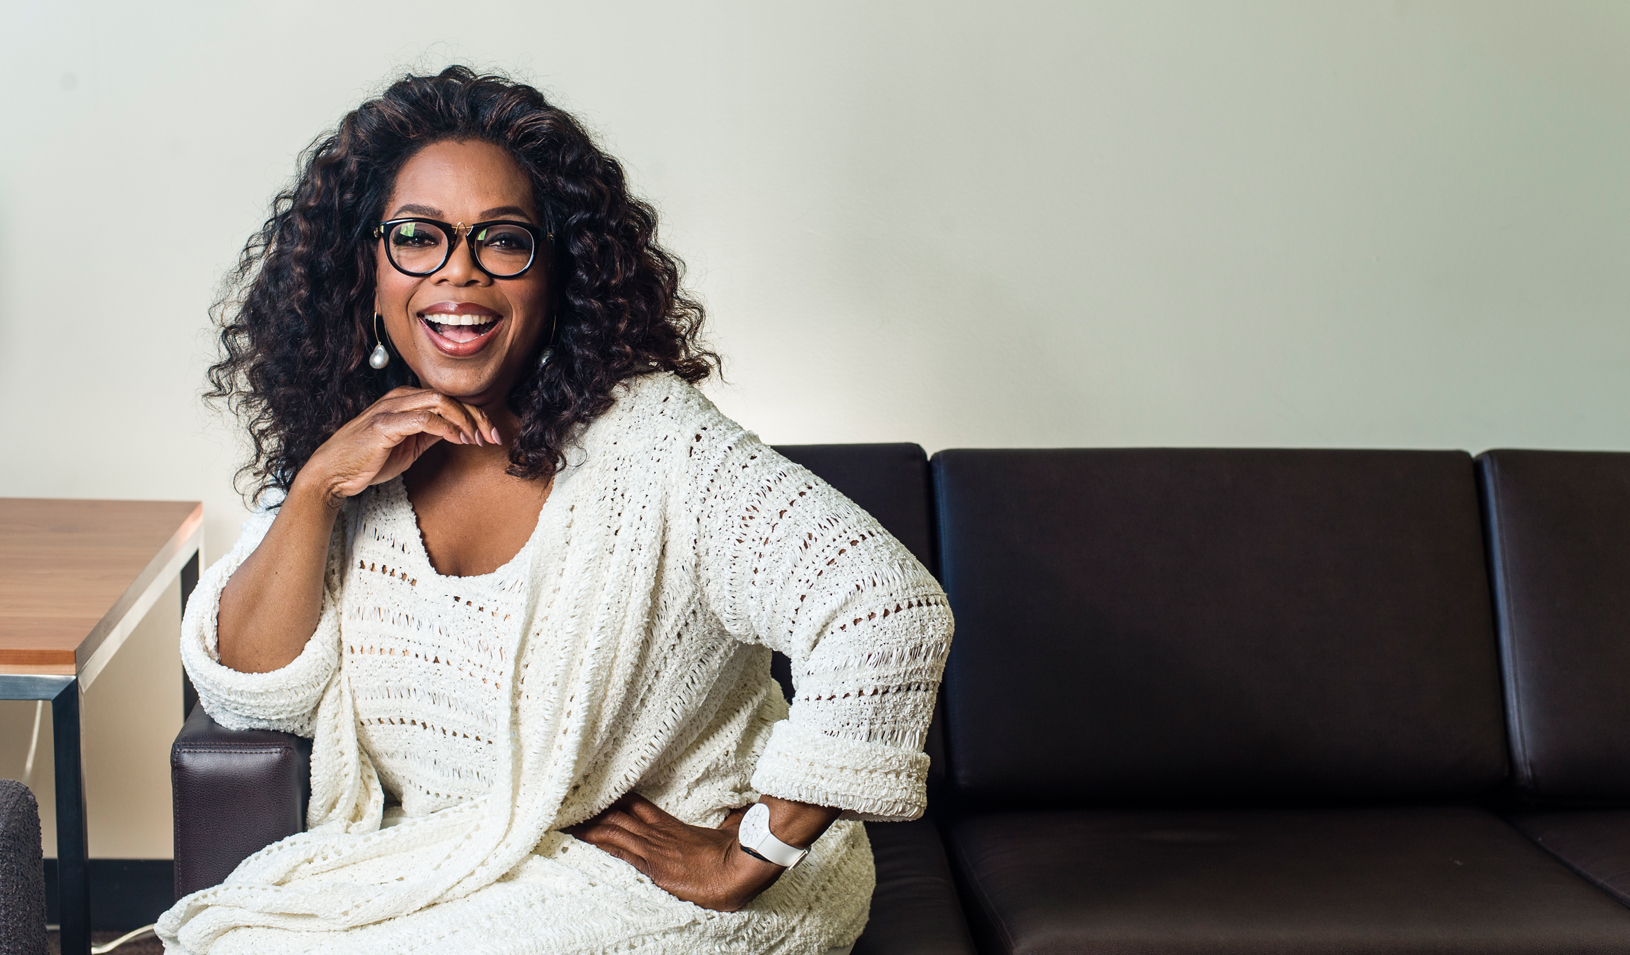 Oprah sitting on a couch smiling at the camera